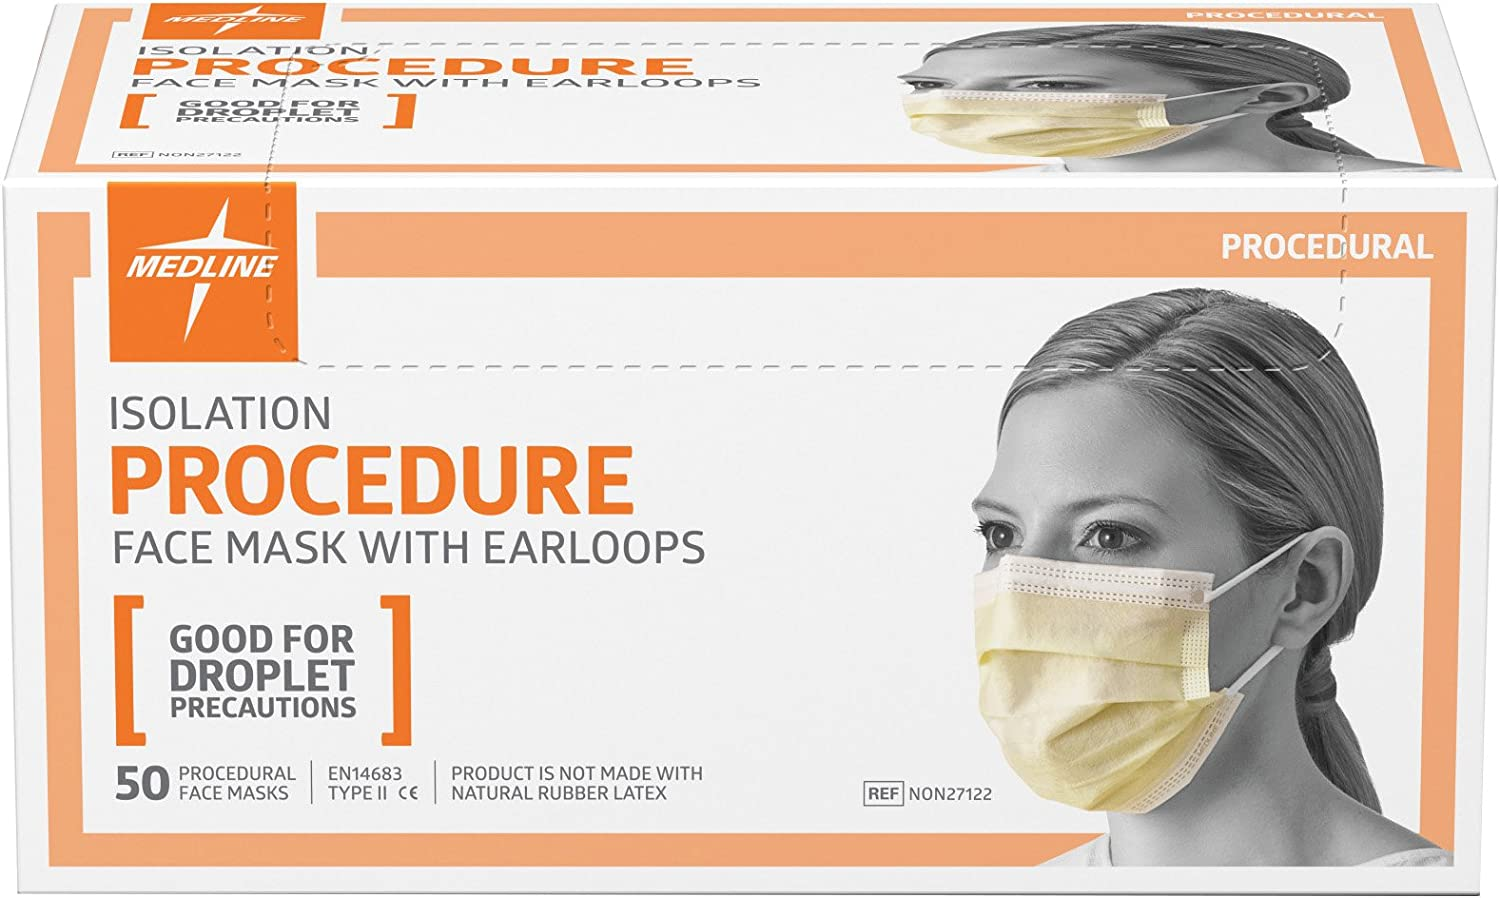 medline surgical face mask